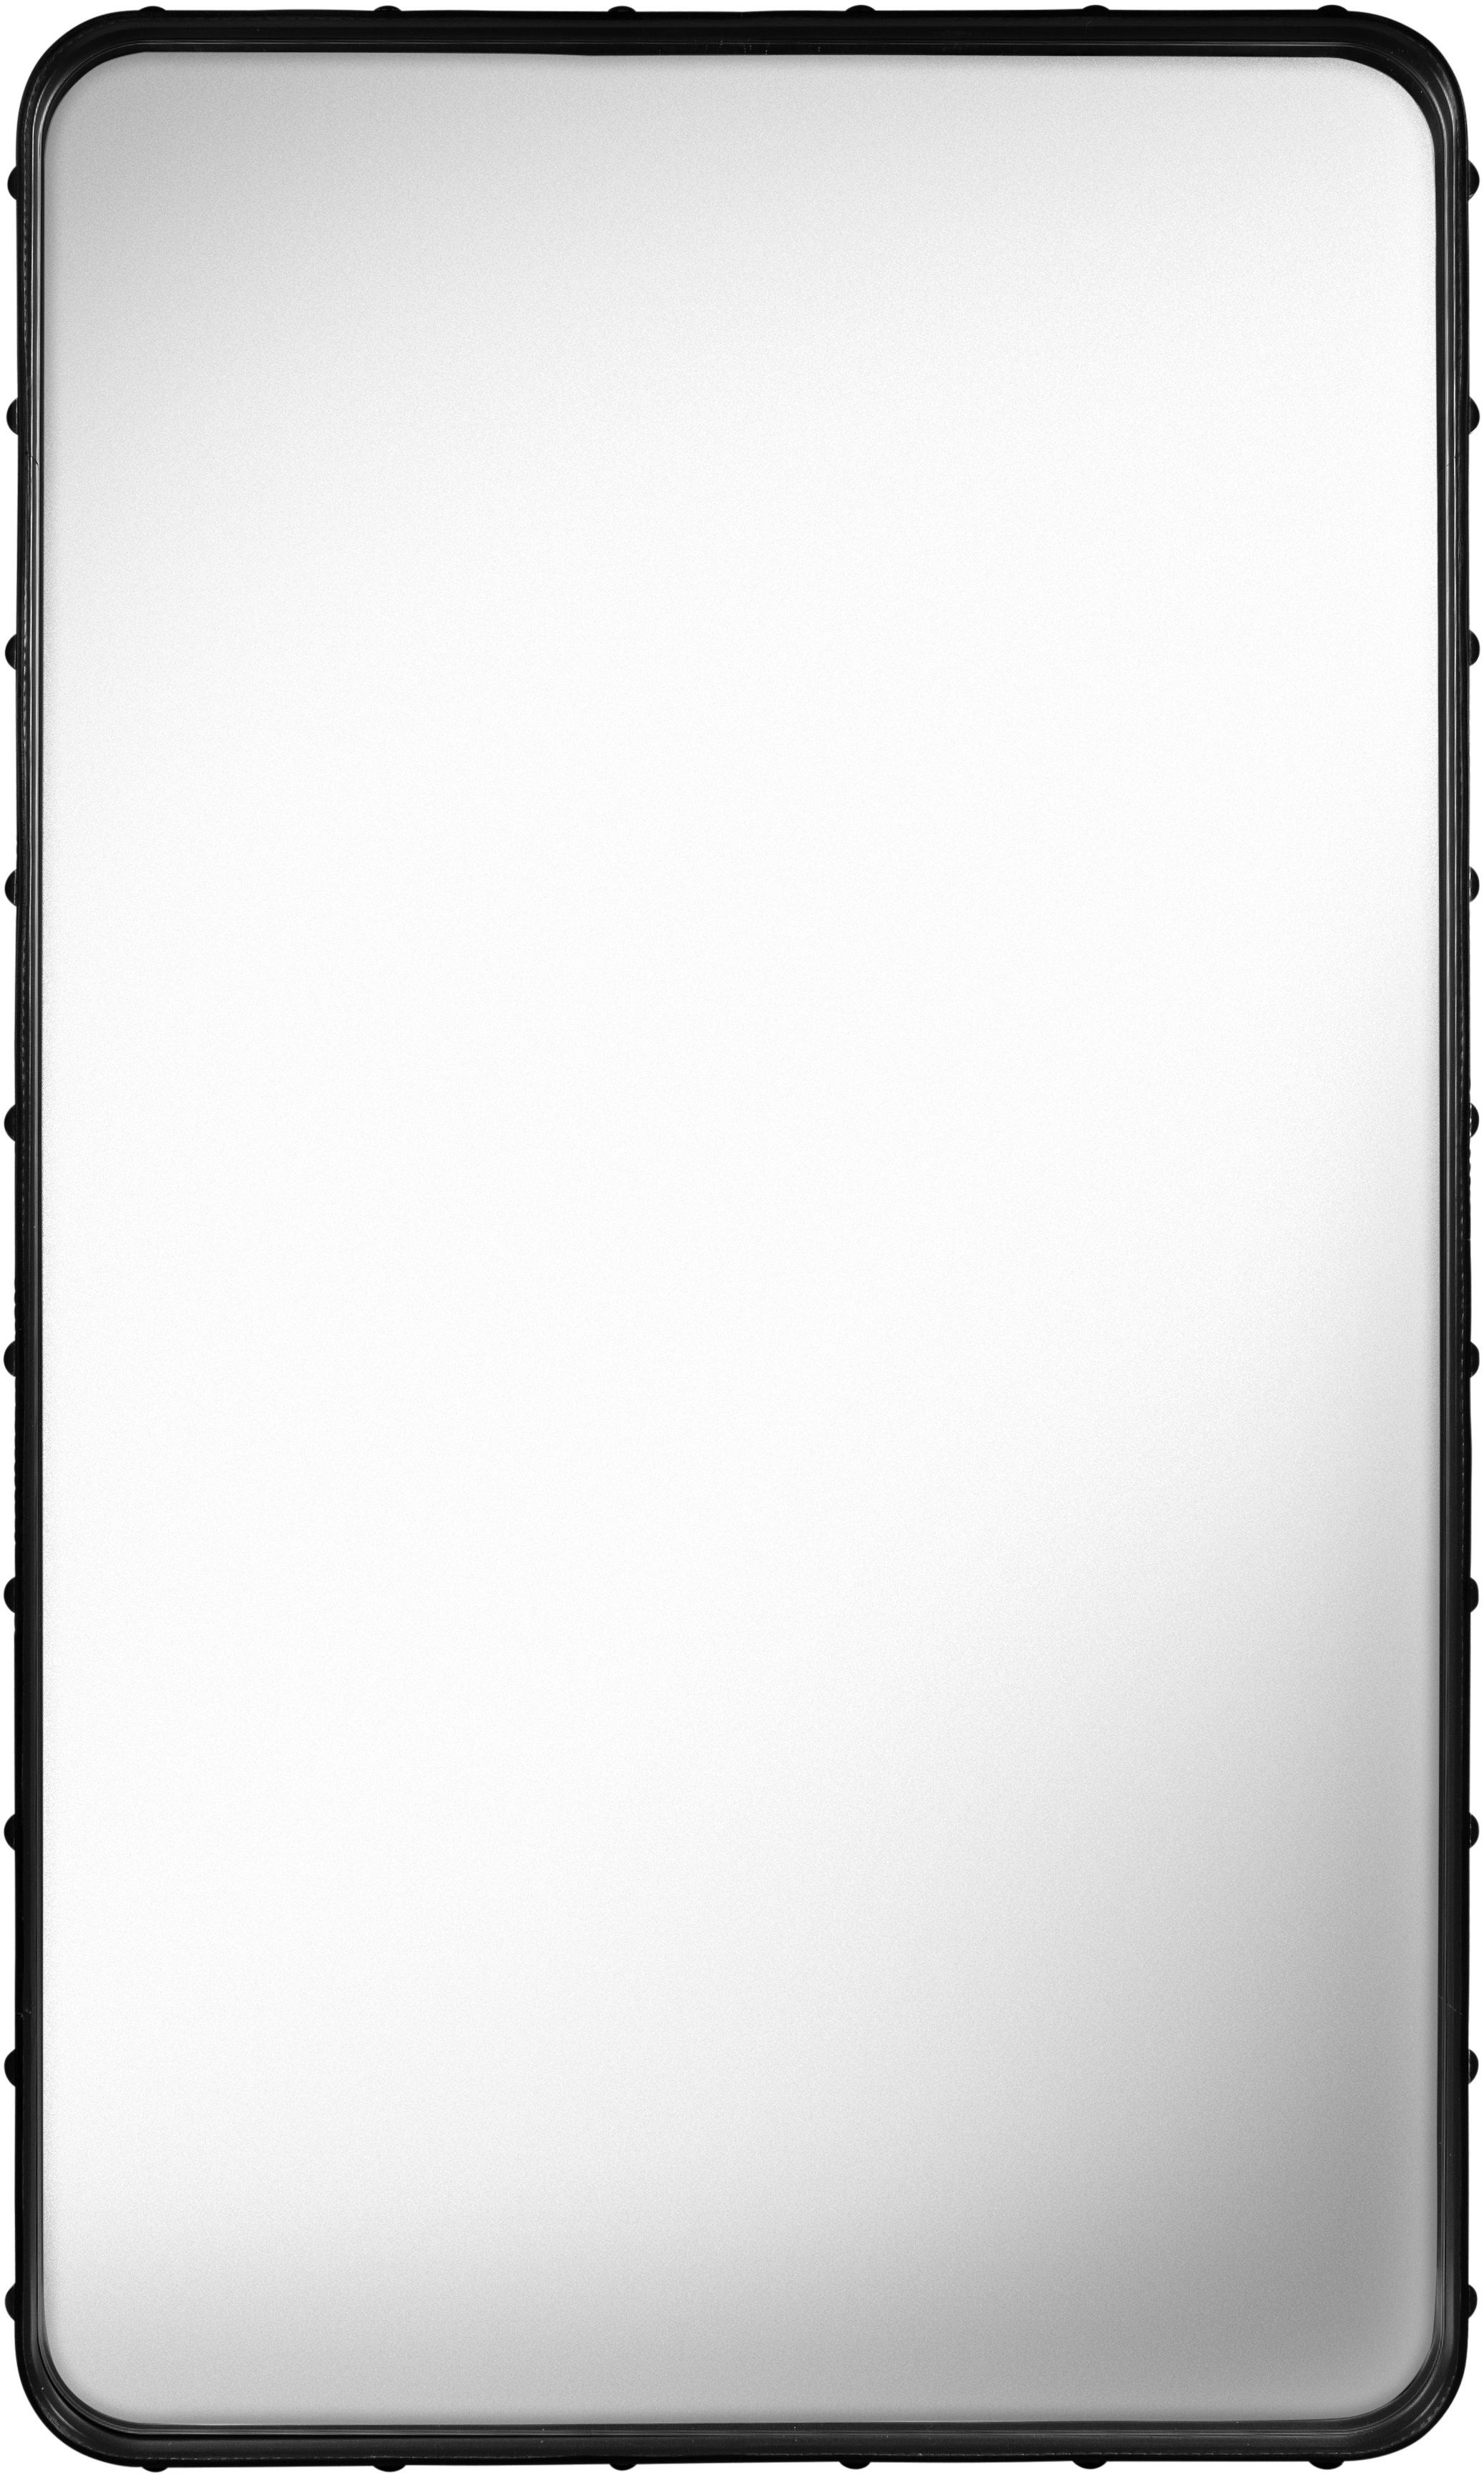 Decoration - Mirrors - Adnet Wall mirror - Rectangular - 115 x 70 cm by Gubi - Black leather - Brass, Leather